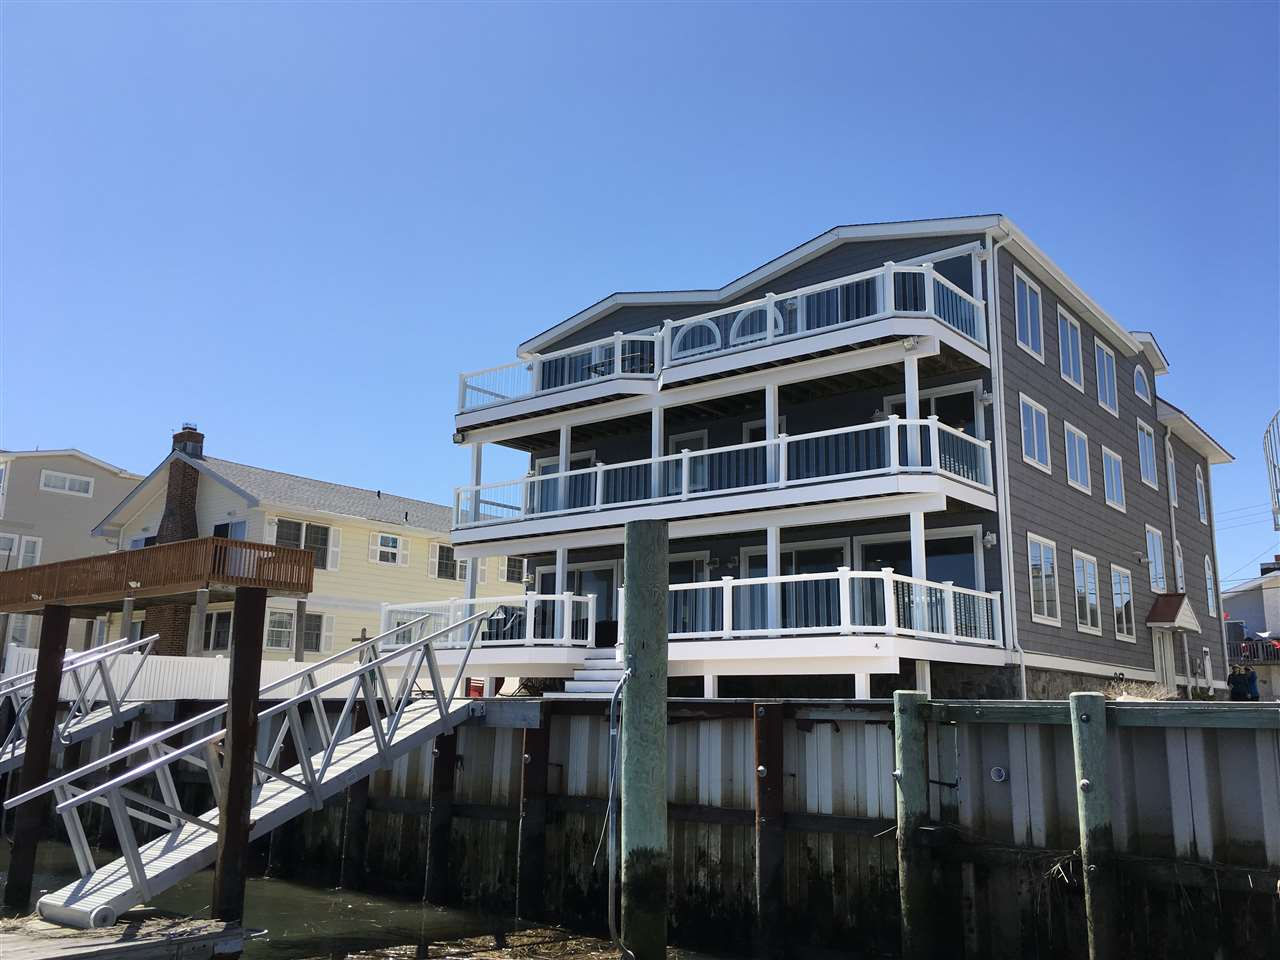 663 W Sunrise Dr, Avalon, NJ 08202